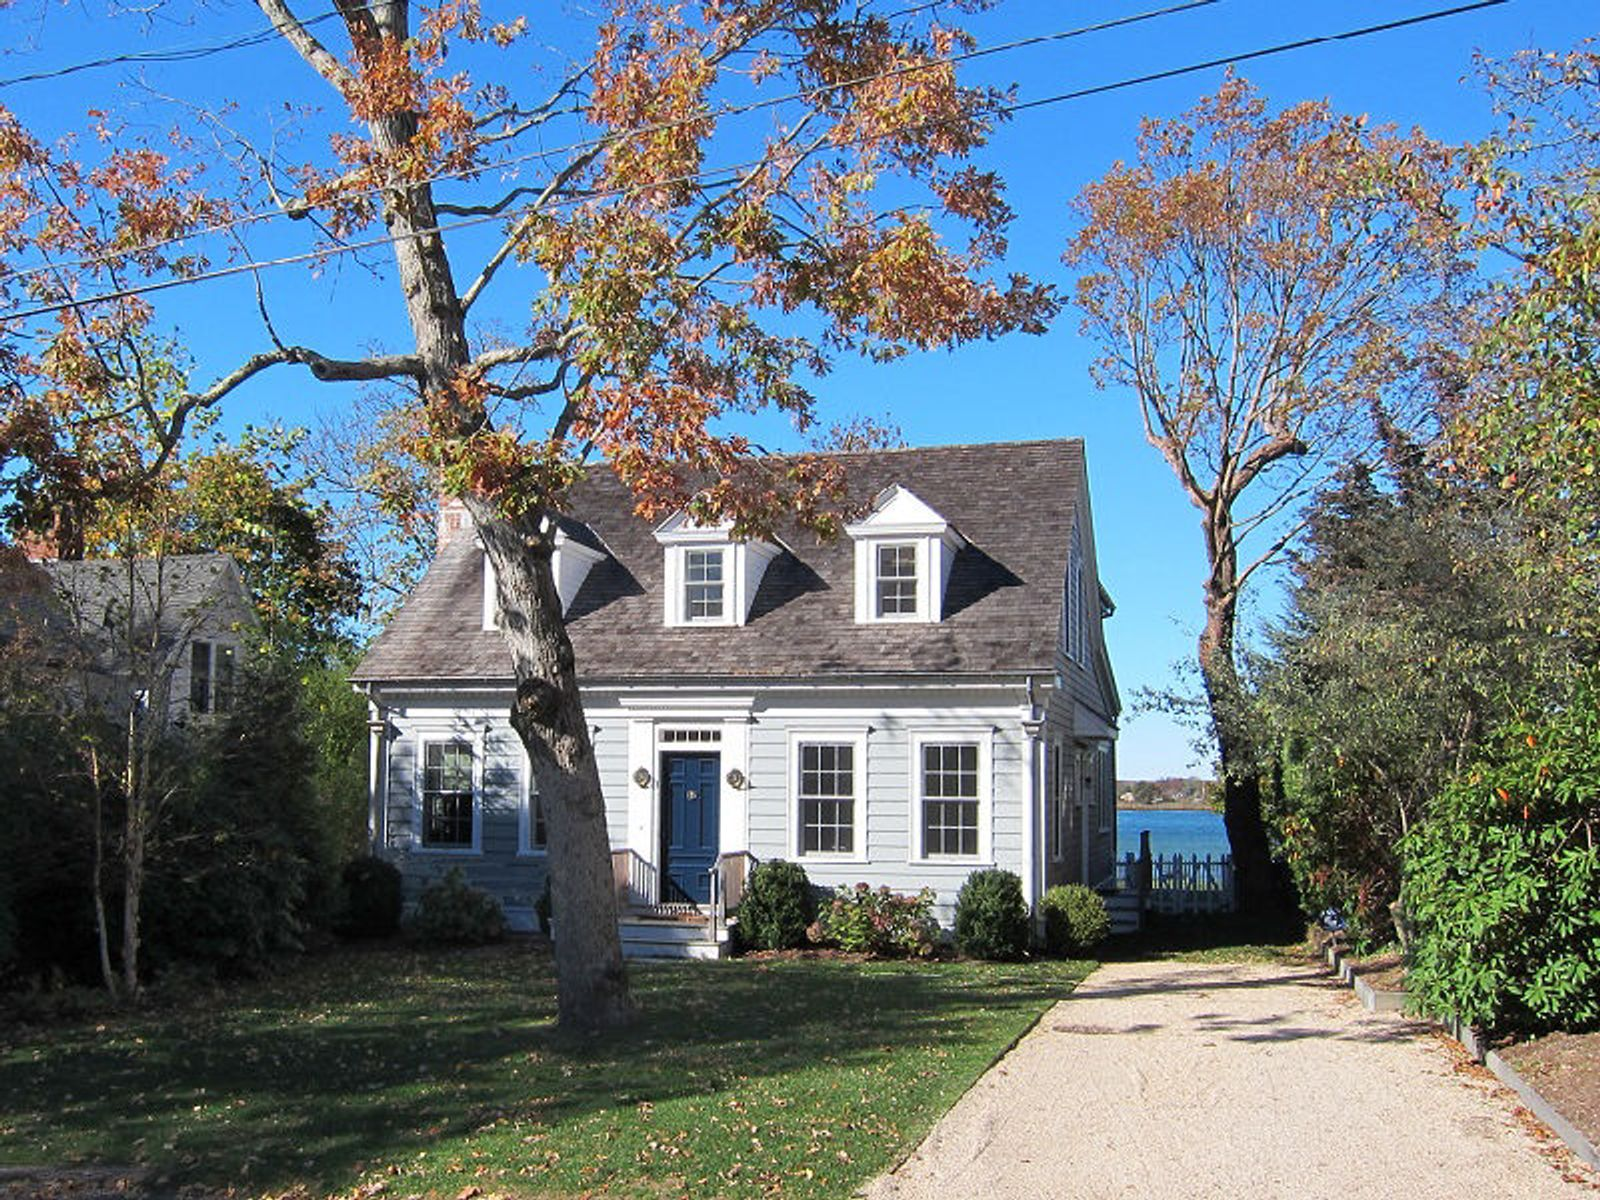 Waterfront-Sag Harbor Village, Sag Harbor NY Single Family Home - Hamptons Real Estate